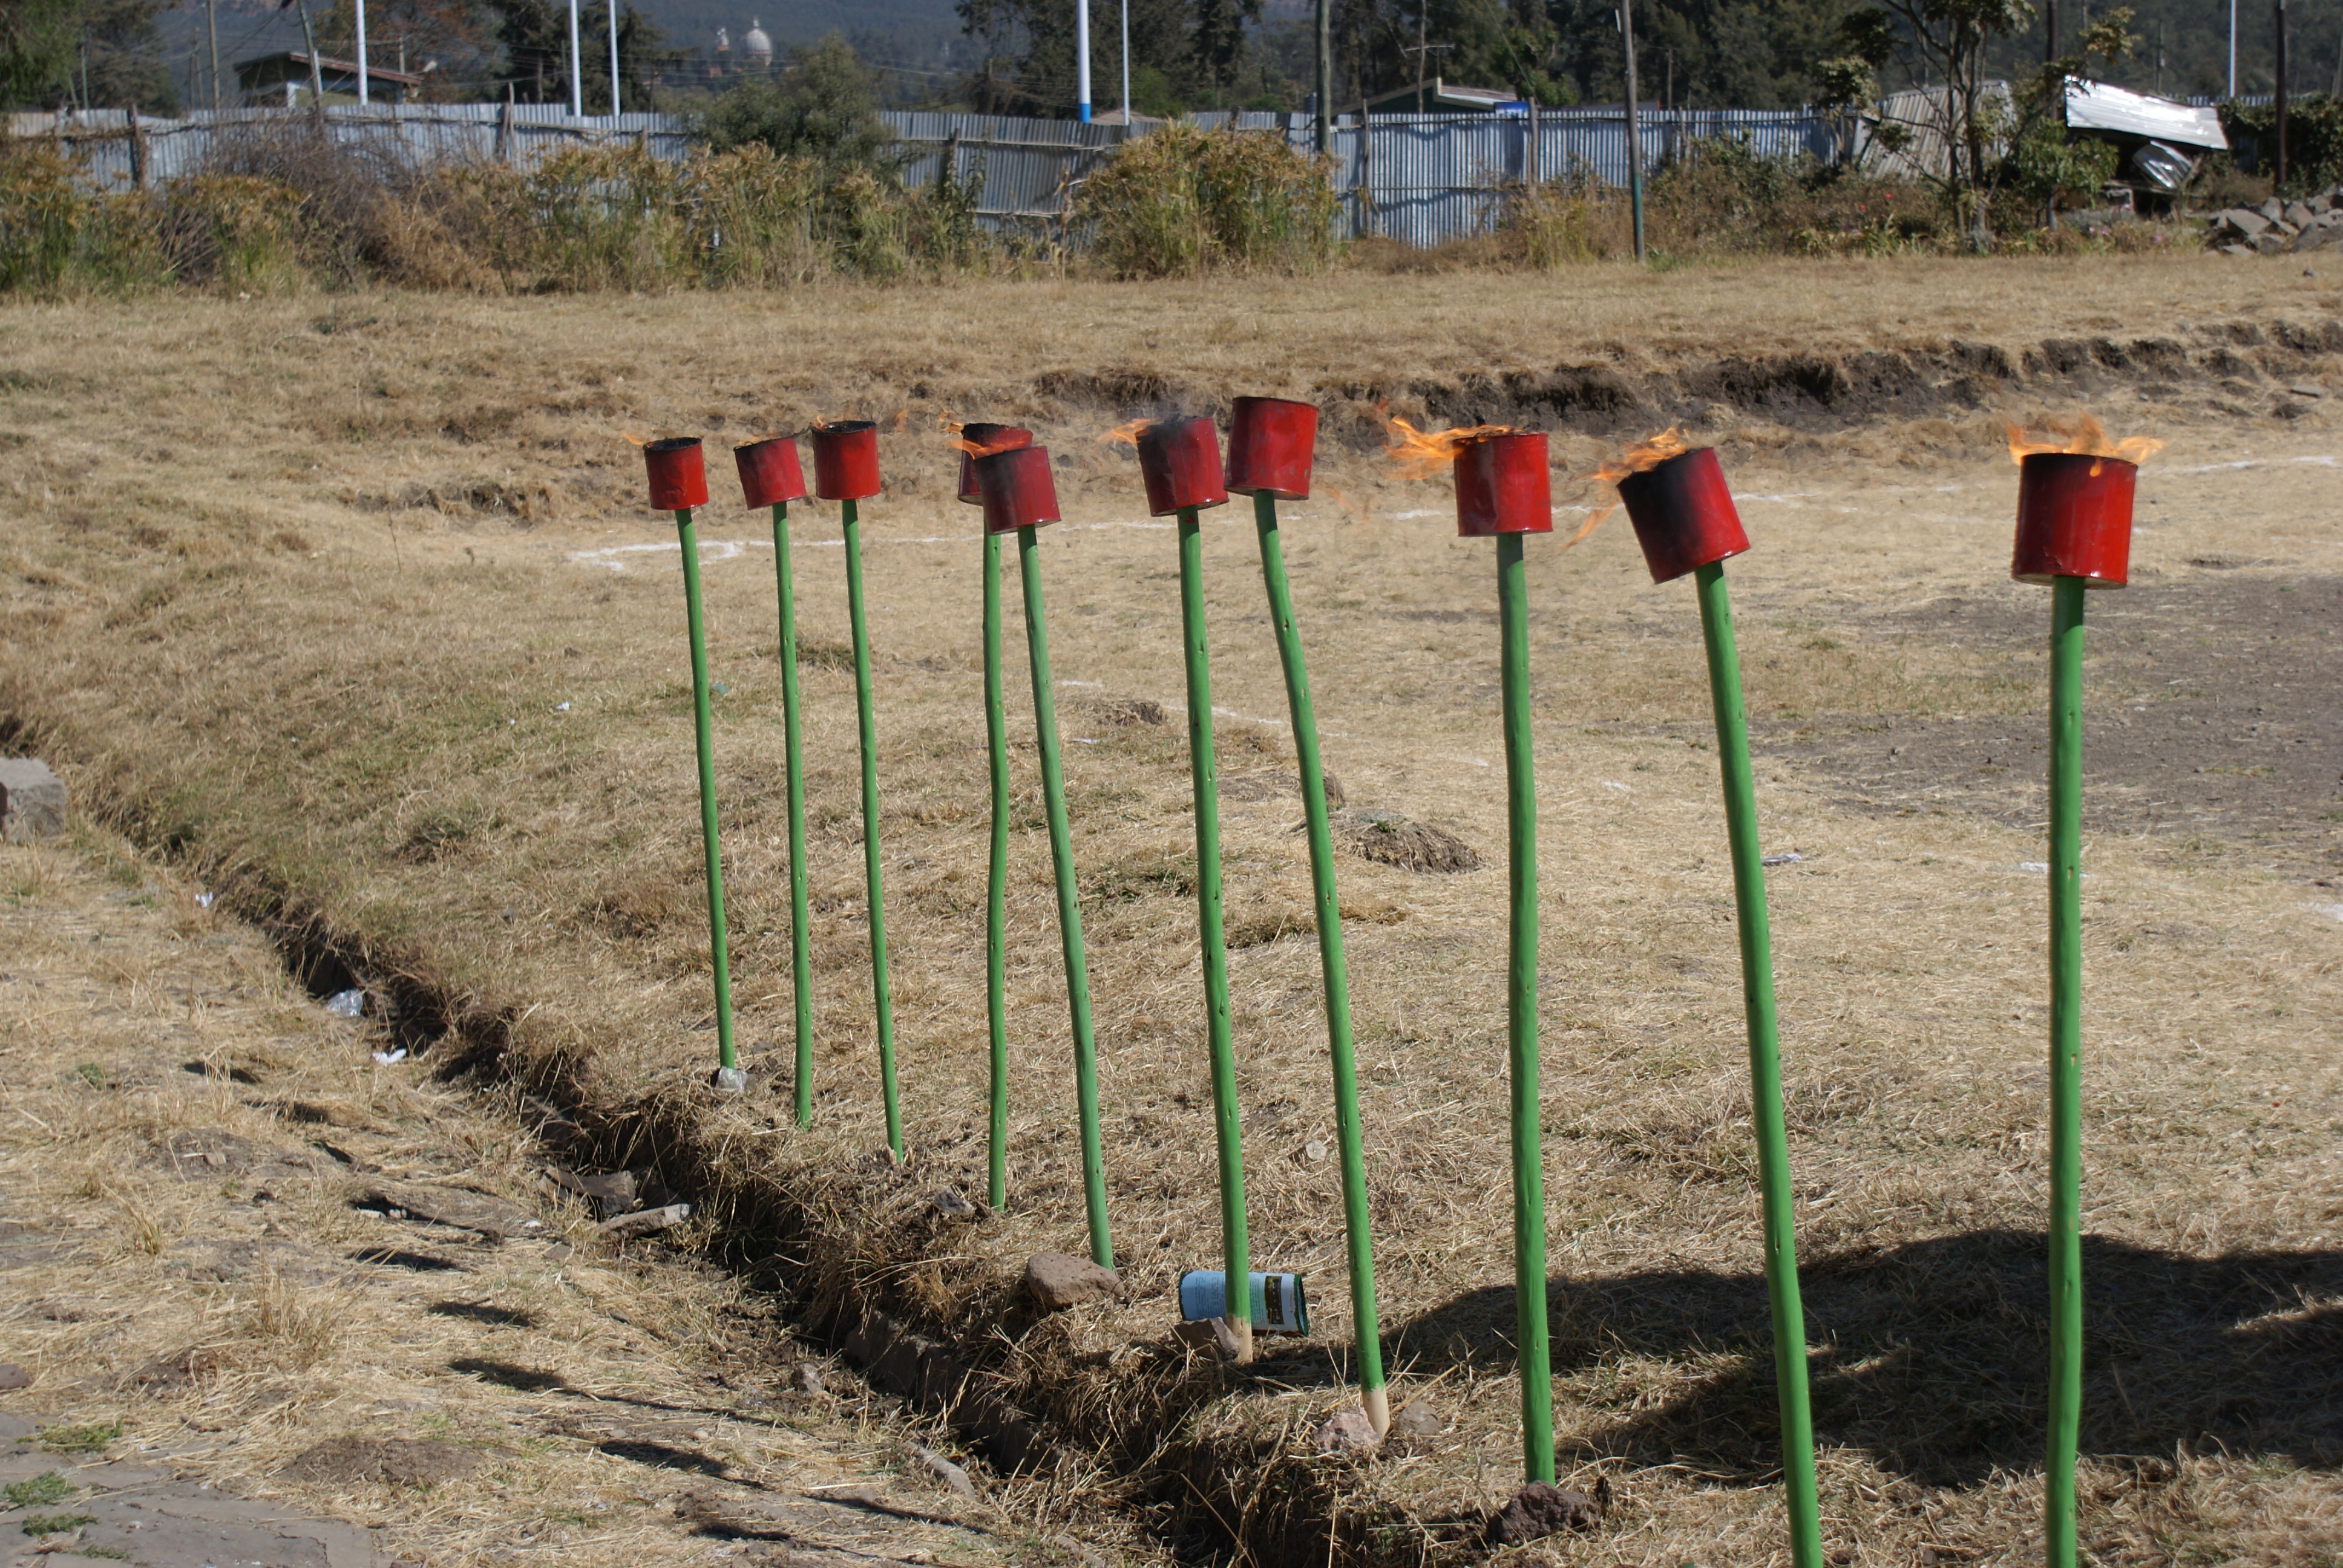 10 Candle torches for 10 years Sport - The Bridge Ethiopia